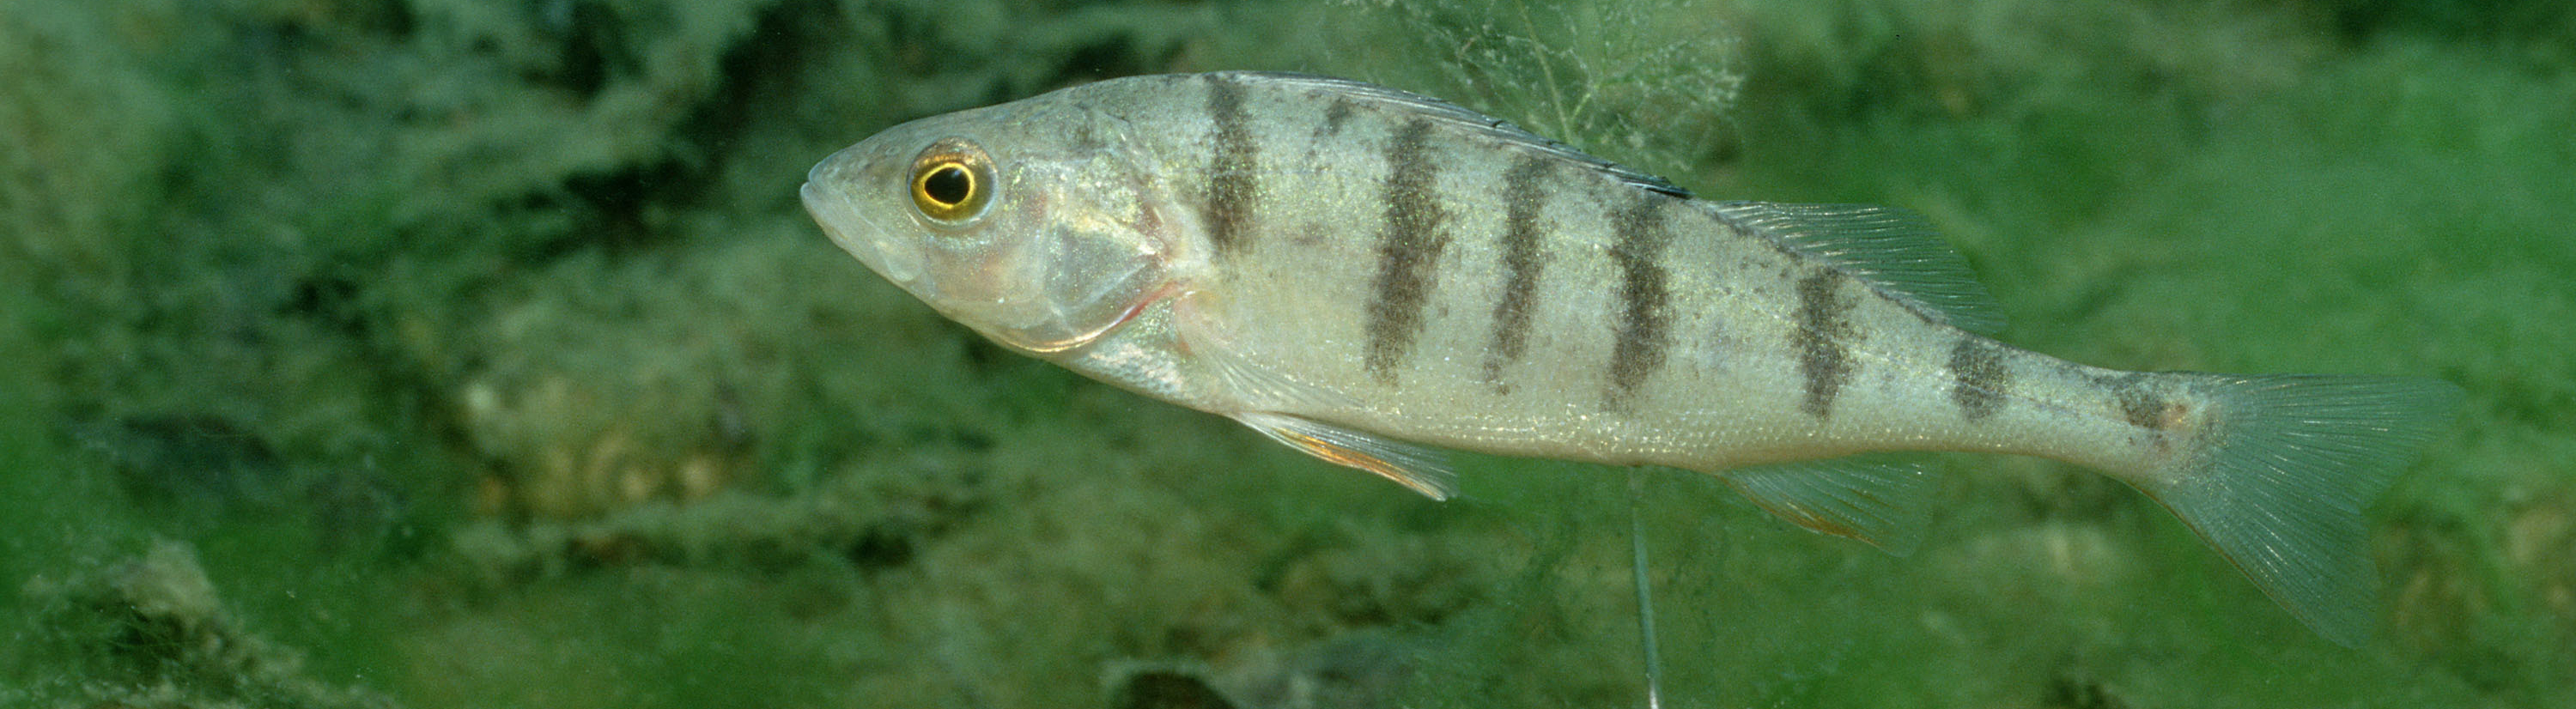 Dec 28, 2008 - Bavaria, Germany - Perch, Perca Fluviatilis. Exact date unknown. fish, swimming, plants, freshwater +++(c) dpa - Report+++